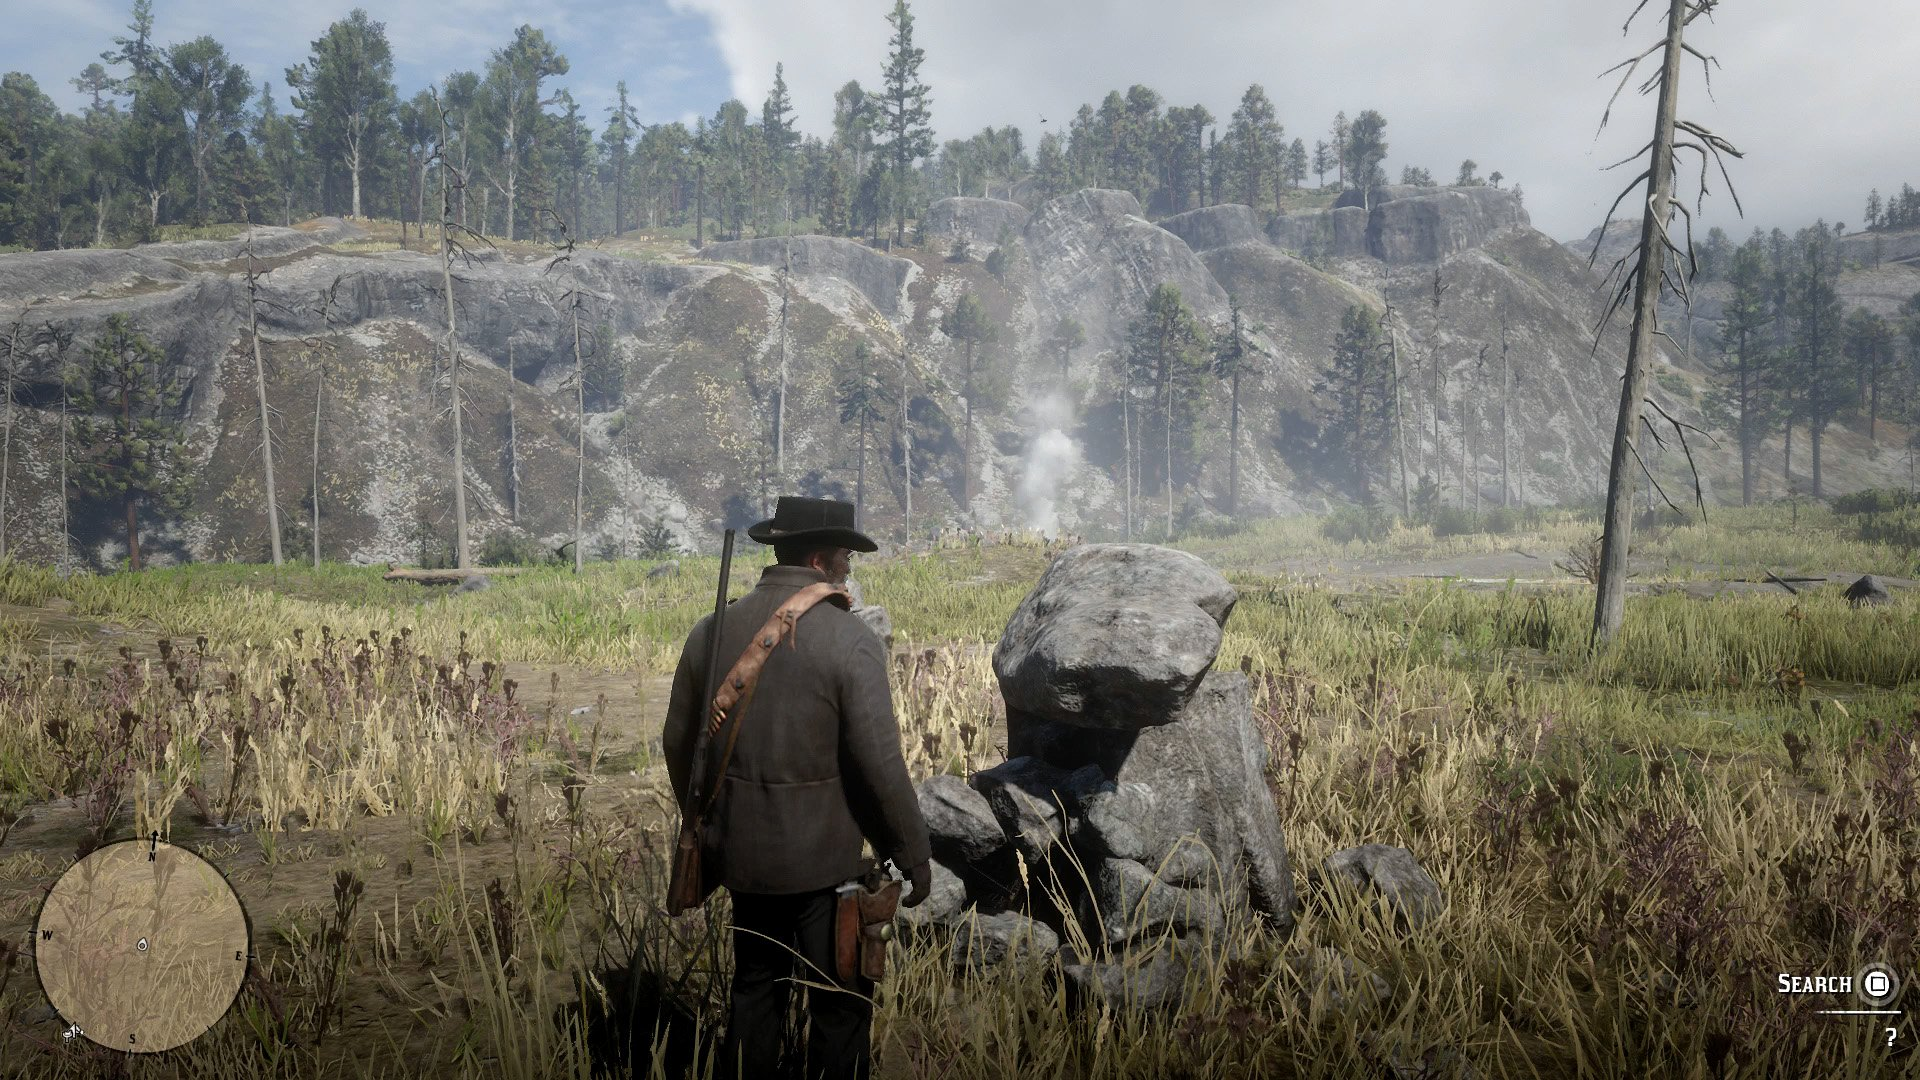 Red Dead 2 has largest first weekend in entertainment history with $725M